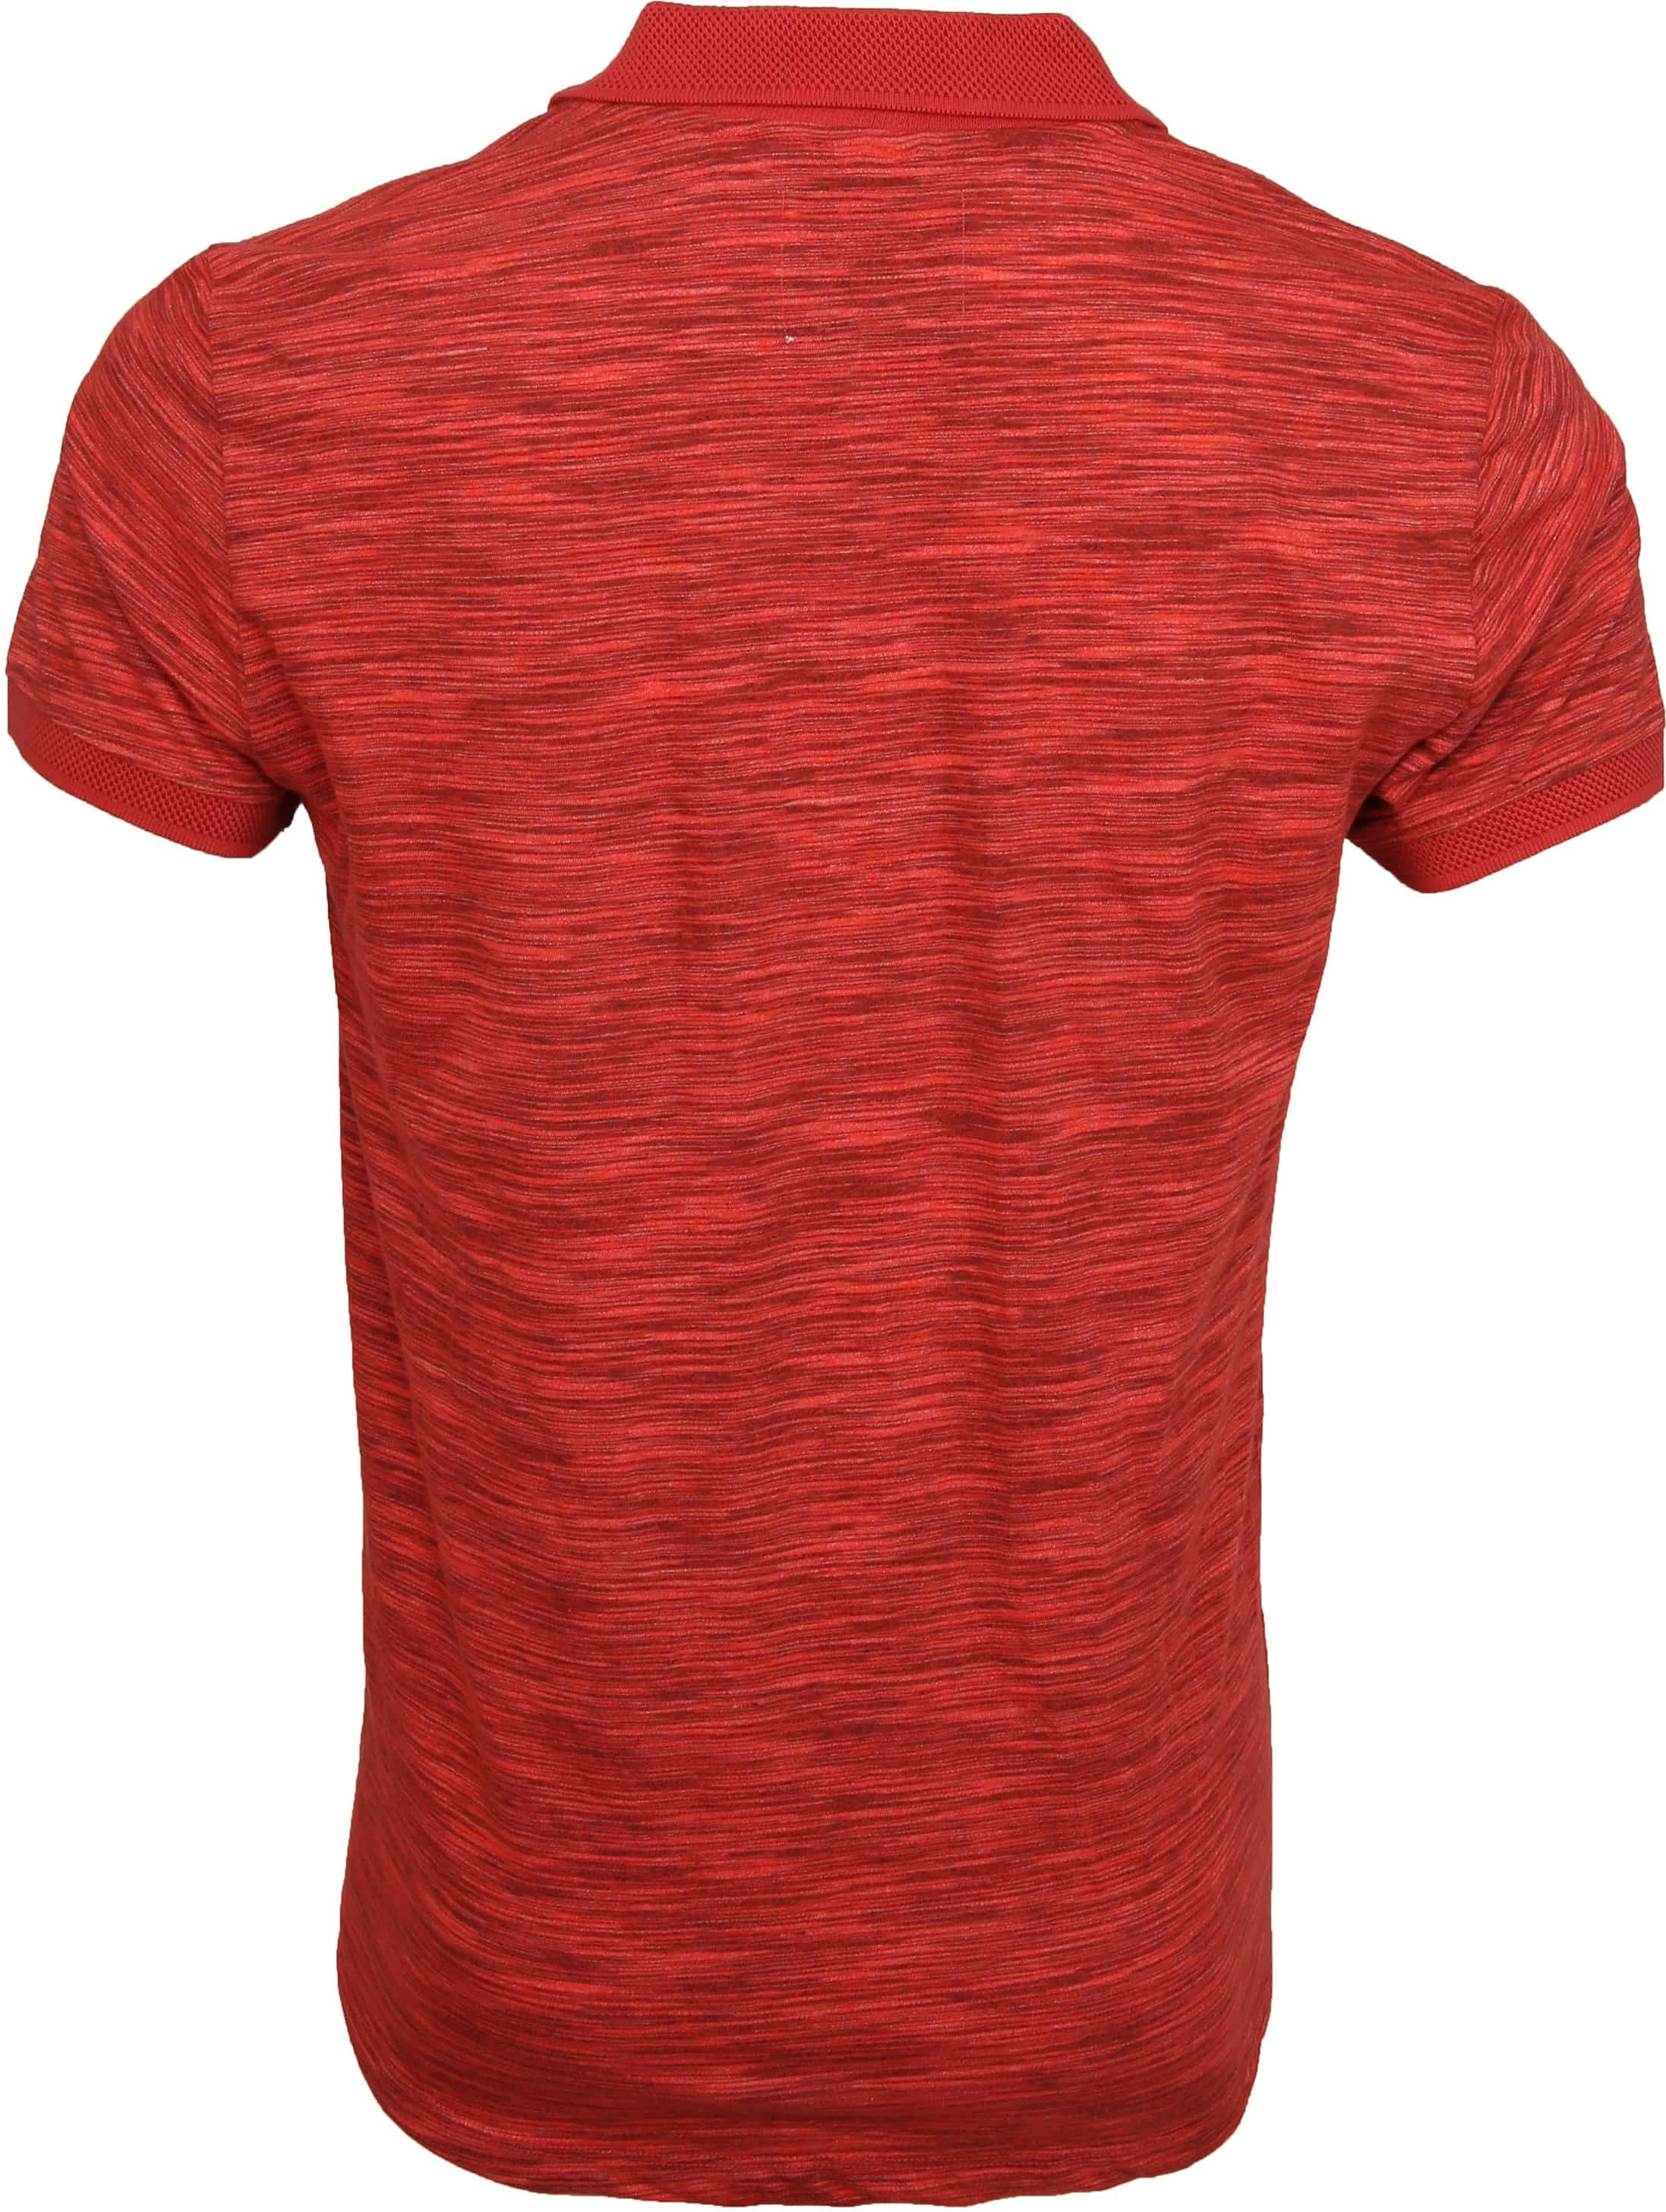 No Excess Poloshirt Grindle Yarn Rot foto 3